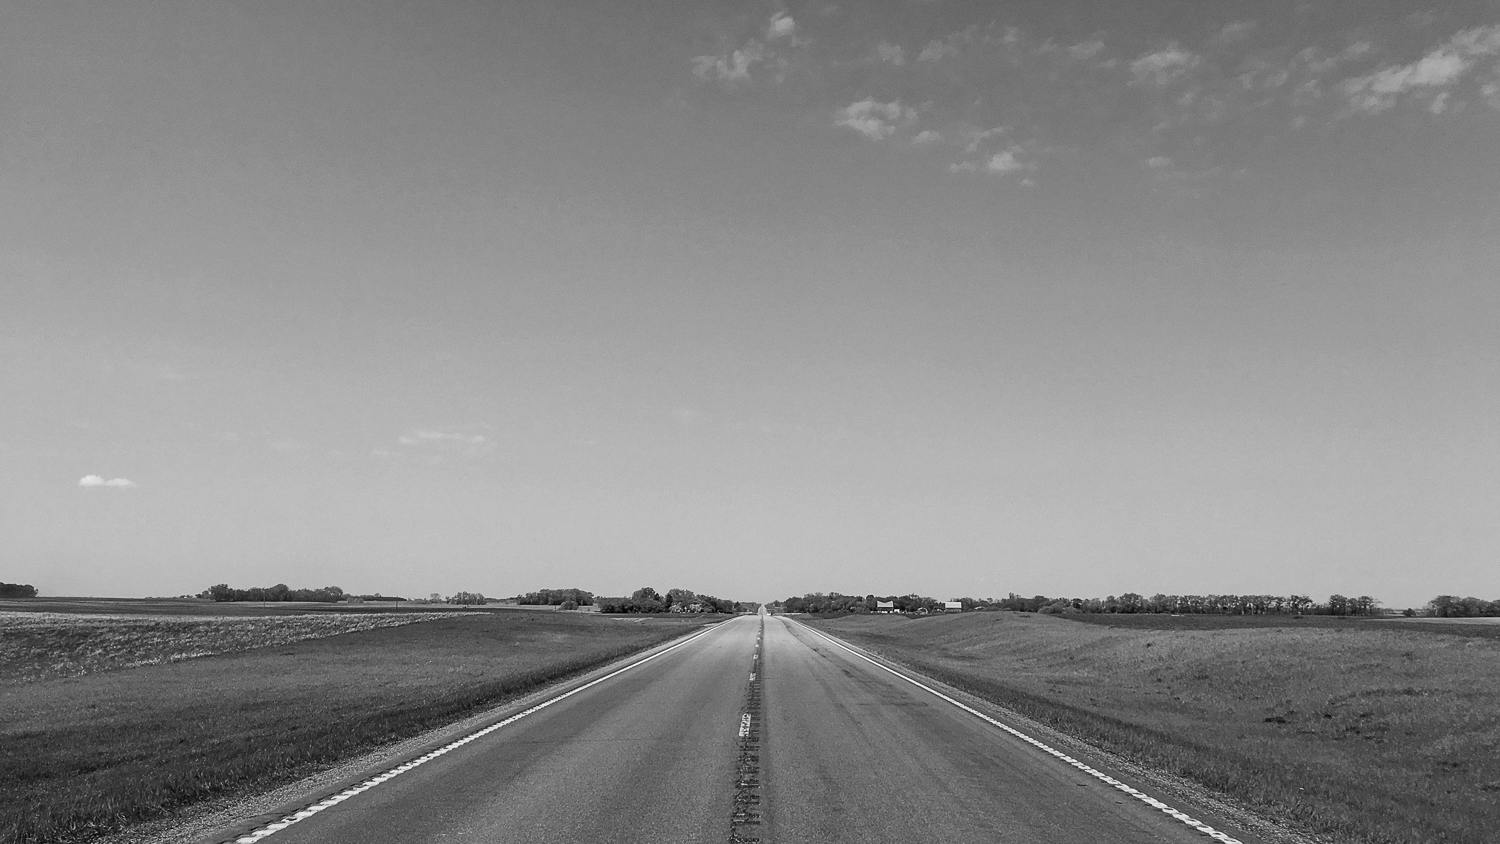 // Approaching Kindred, North Dakota